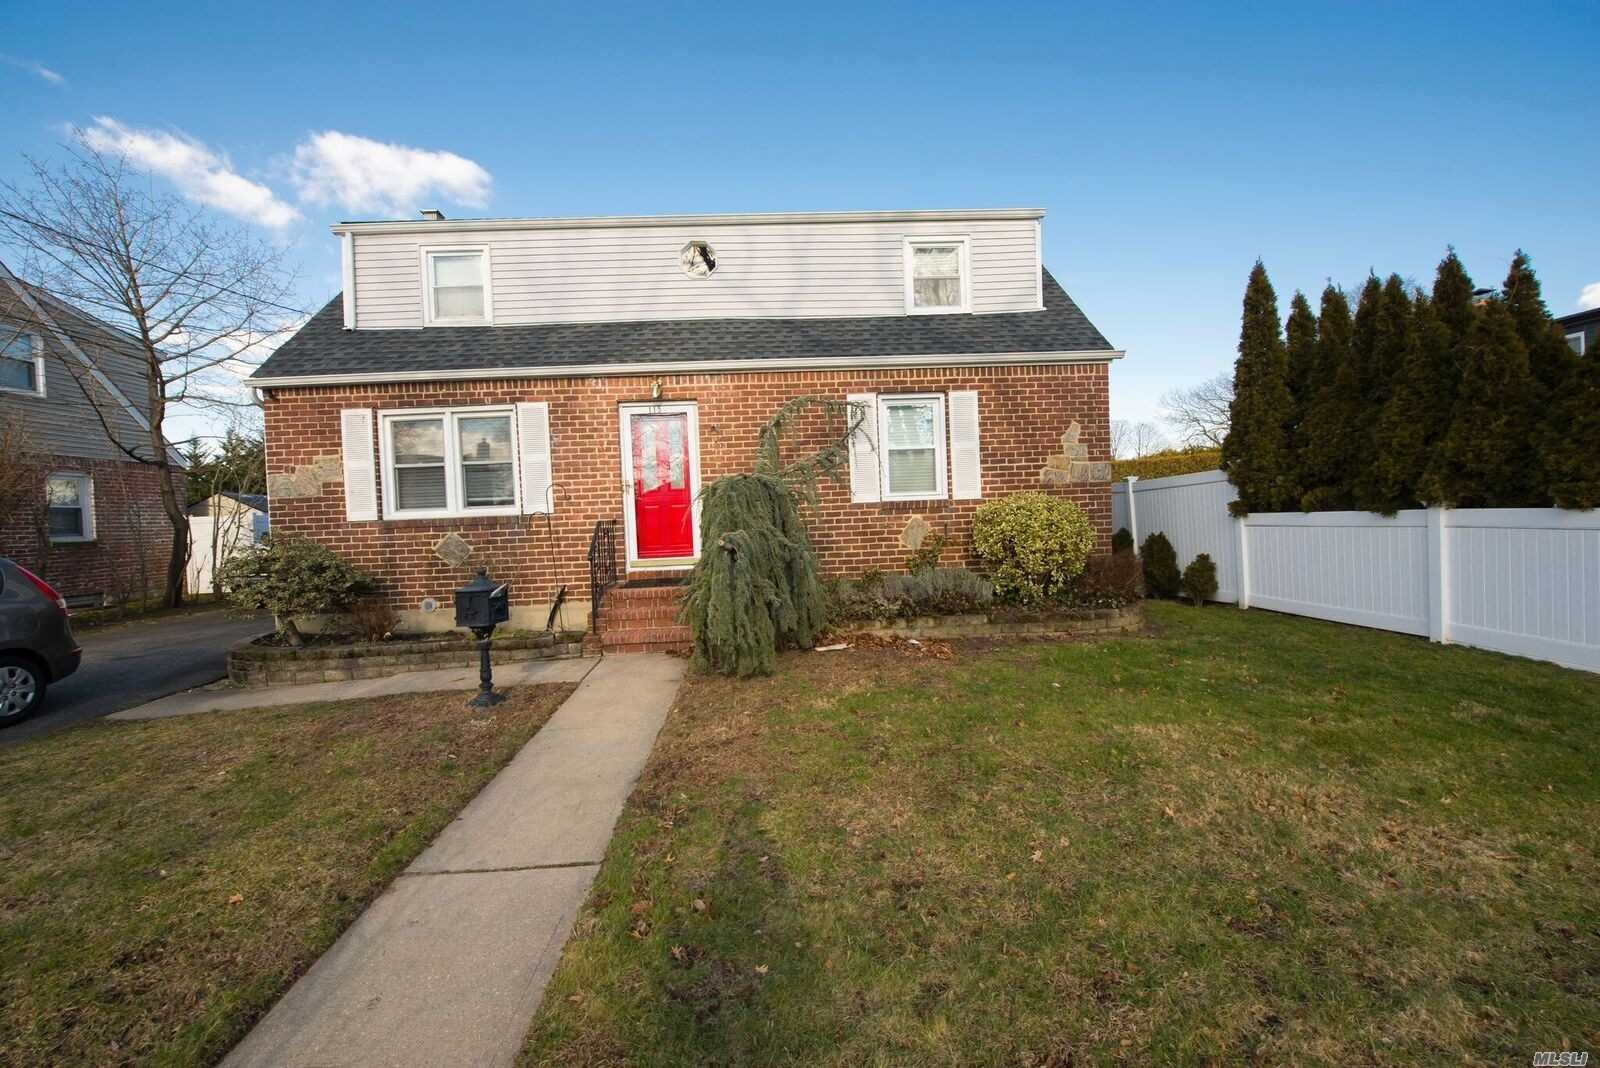 Dormered Home 8 Short Blocks From Lirr! Gas Heating And Cooking, New Kitchen And Bath W/Radiant, Security Cameras, Roof Approx 7 Yrs 1 Layer, Generator, Instant Hot Water, Garb Disp, 200 Amps, New Front And Back Doors, New Sewer Line, Mostly New Storm Windows, Extra Wide Garage